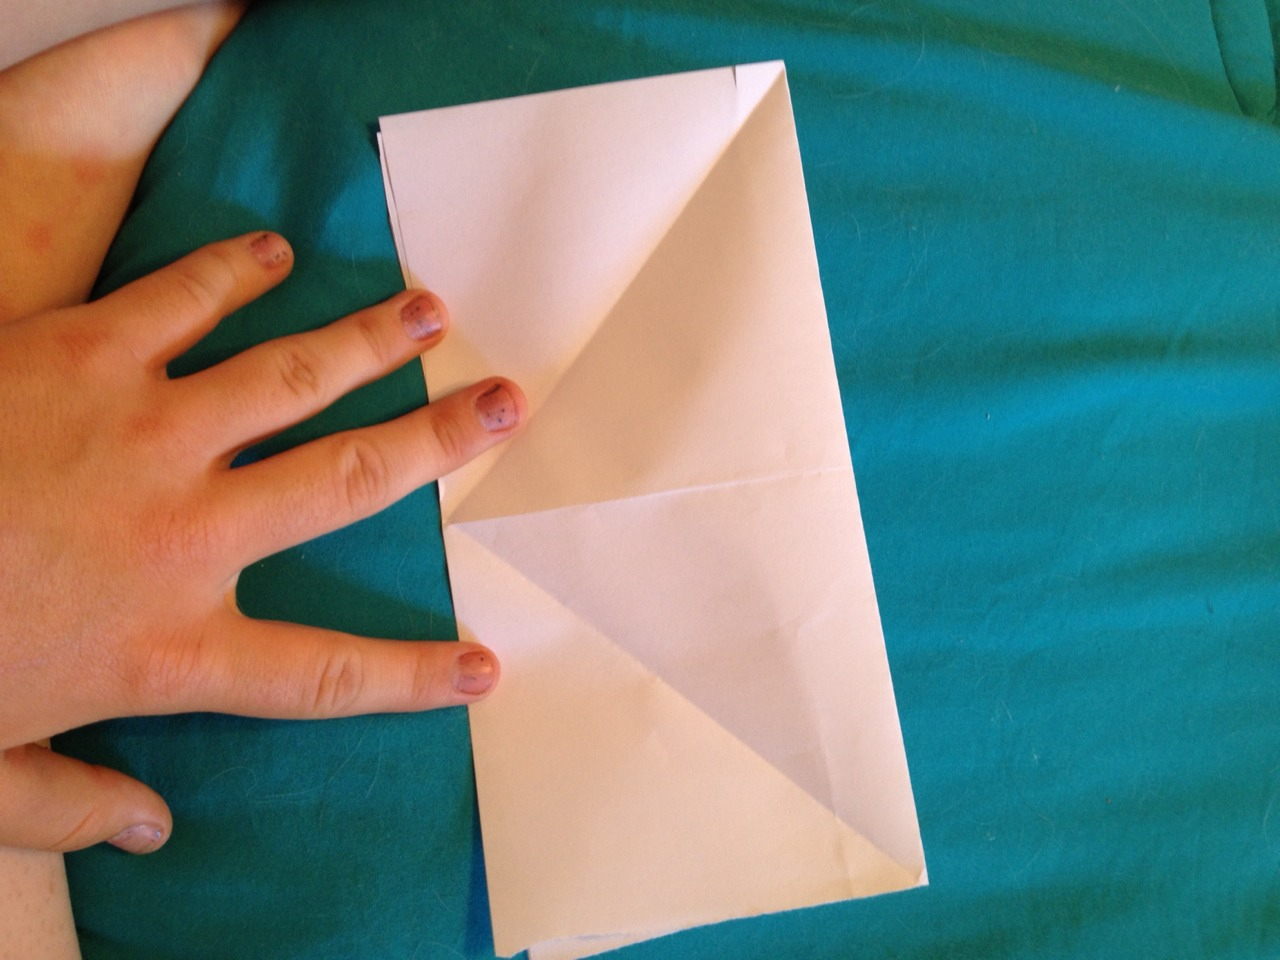 Fold in half and unfold